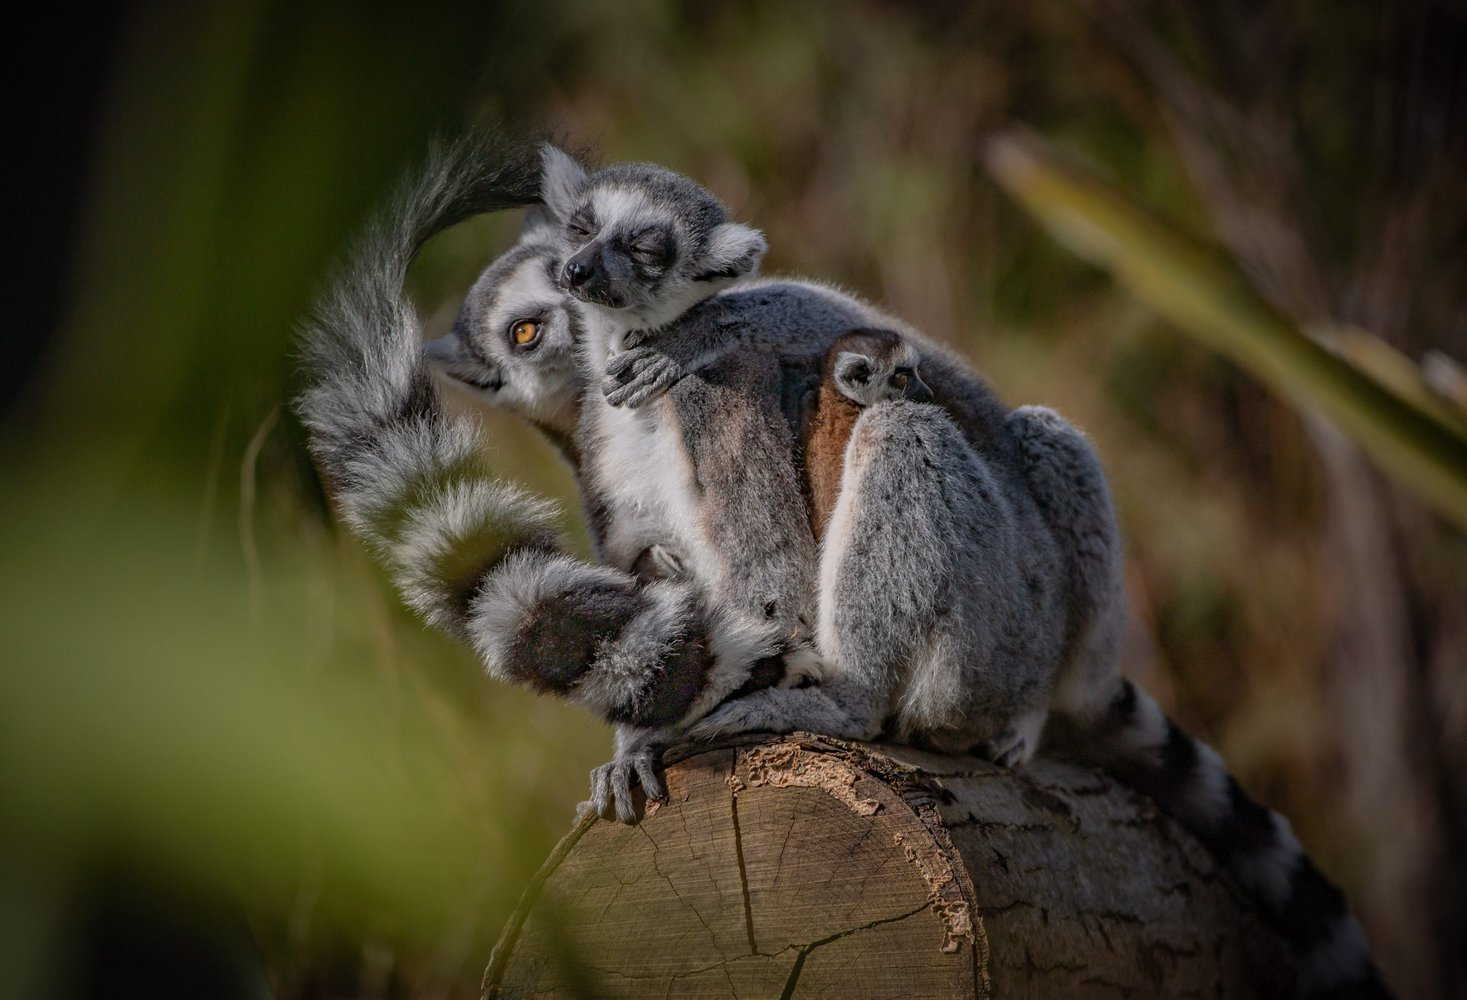 Rare-TWIN-baby-lemurs-born-at-Chester-Zoo-13-scaled.jpg